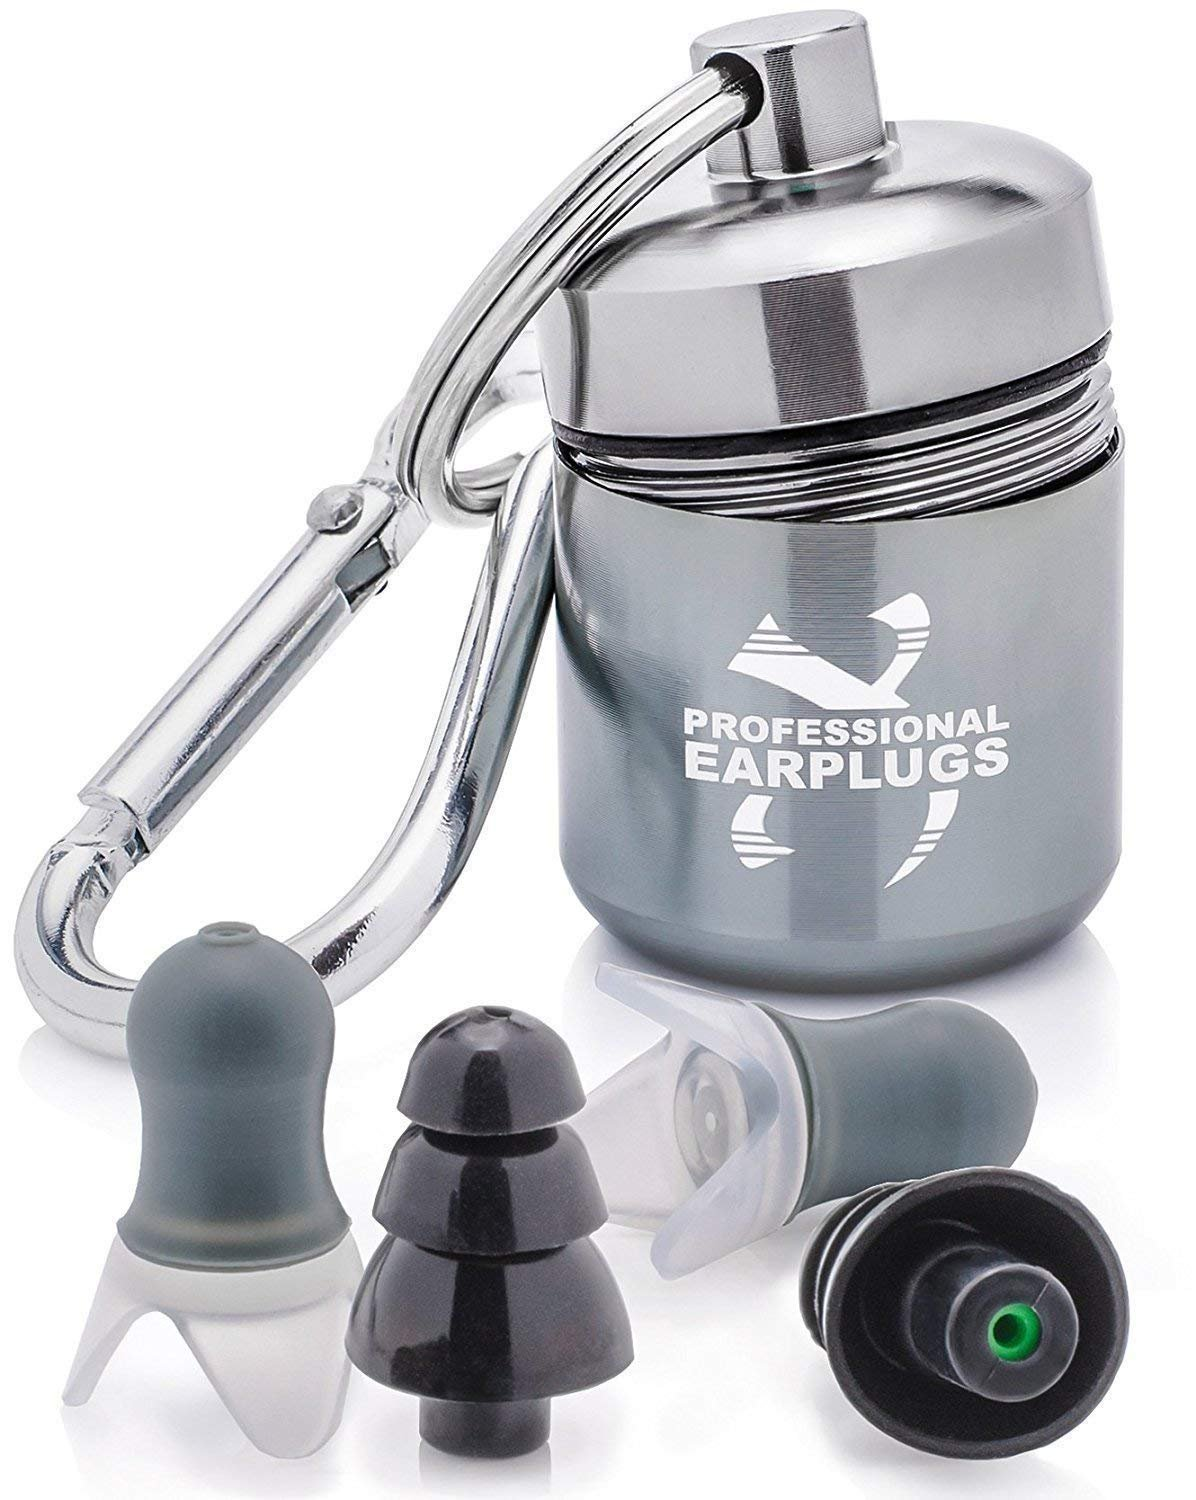 Noise Cancelling Ear Plugs for Sleeping - High Fidelity Silicone Earplugs Musicians'